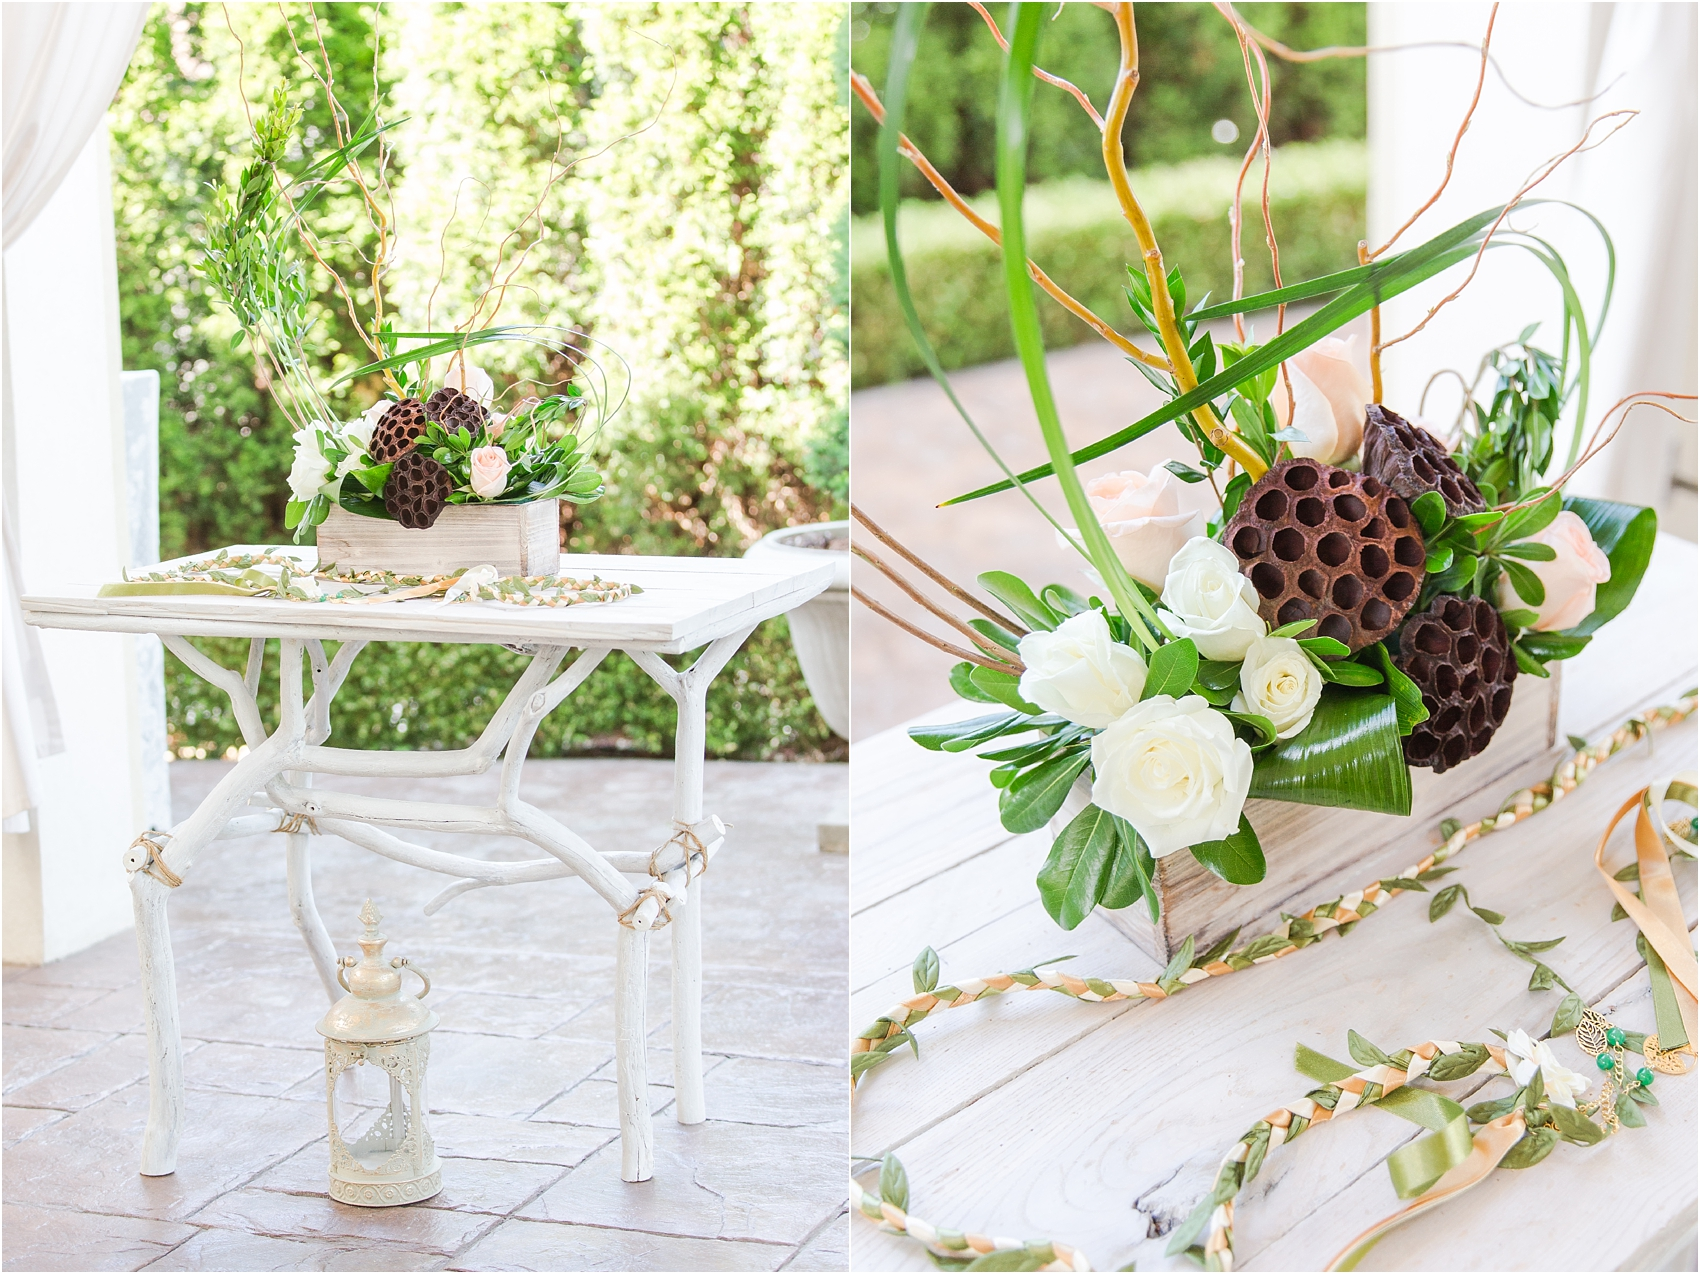 lord-of-the-rings-inspired-wedding-photos-at-crystal-gardens-in-howell-mi-by-courtney-carolyn-photography_0023.jpg